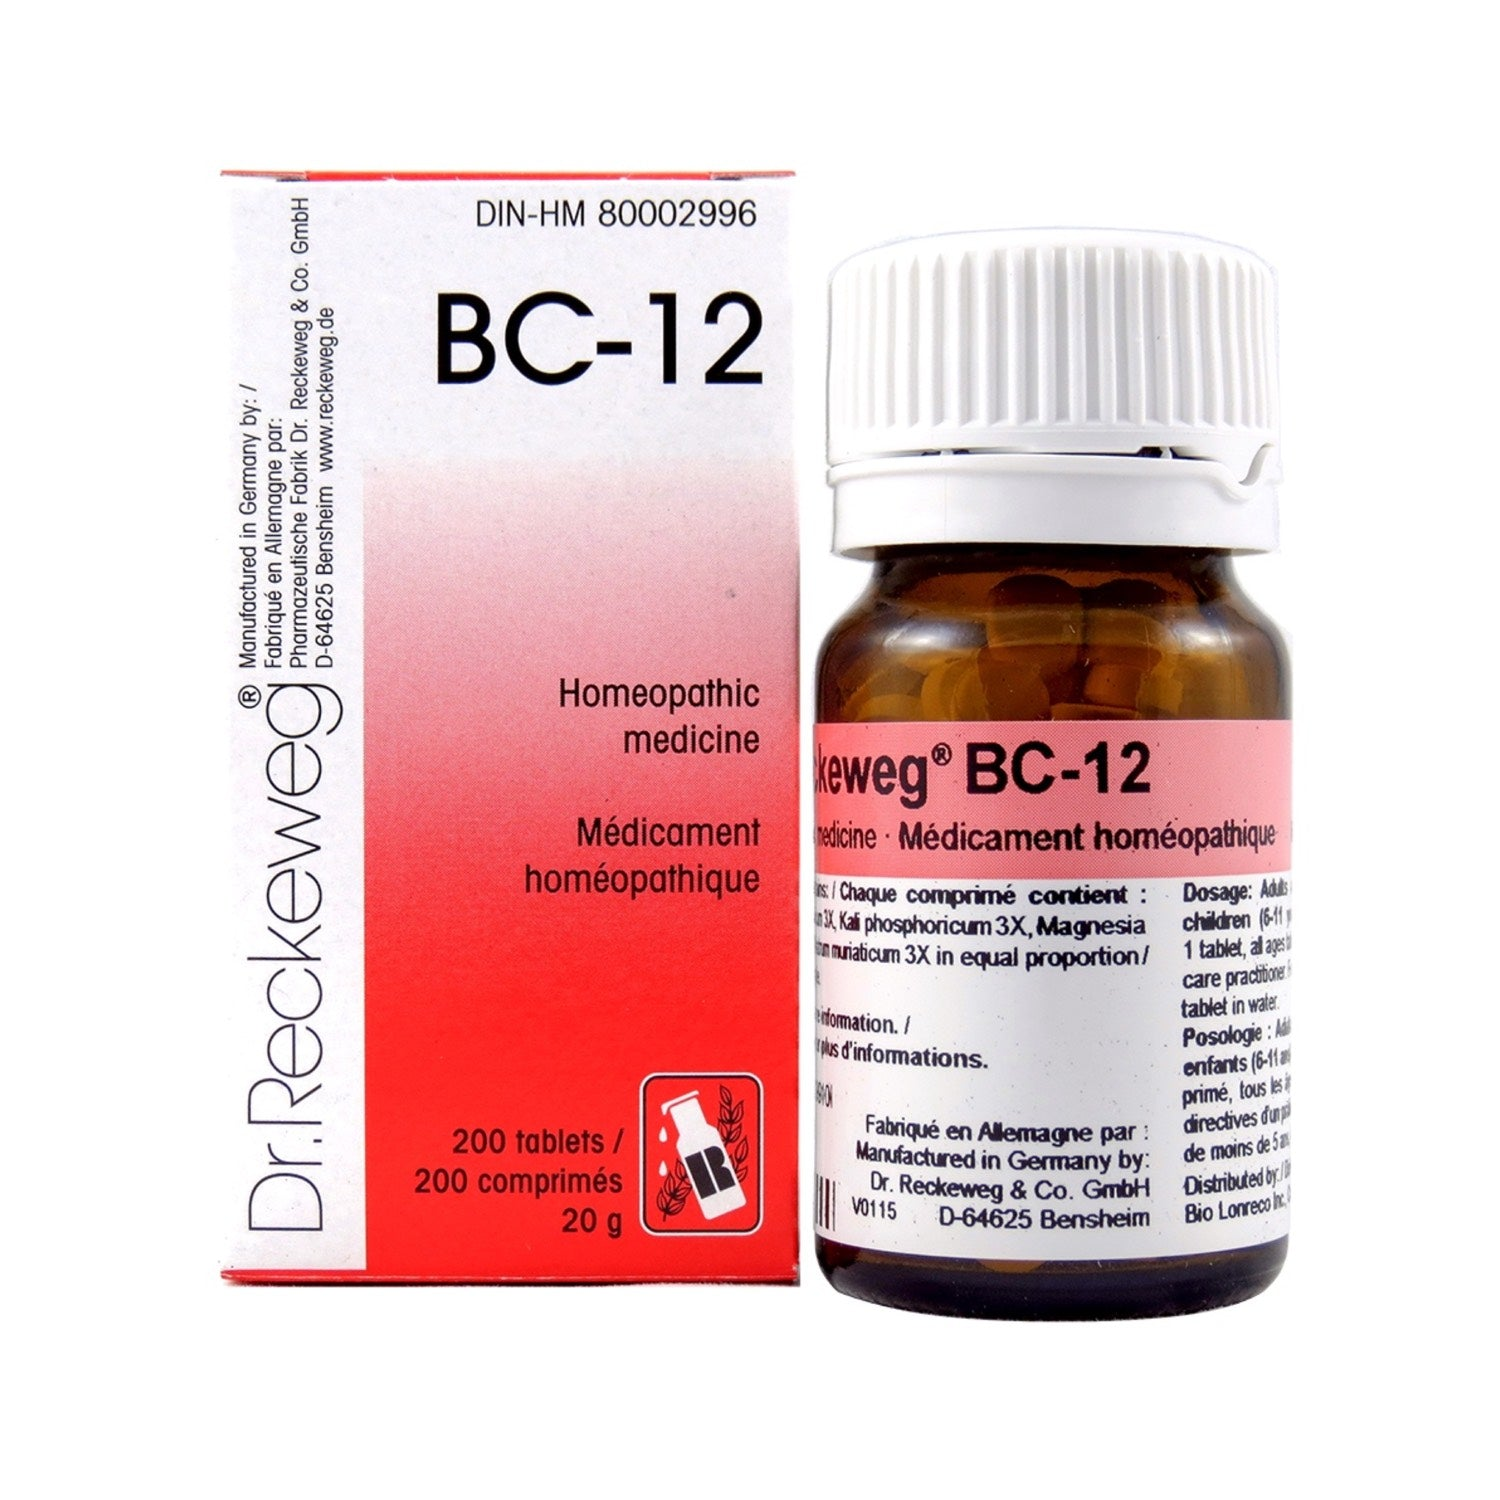 BC-12 Homeopathic medicine – Combination salt  200 tablets (20 g)